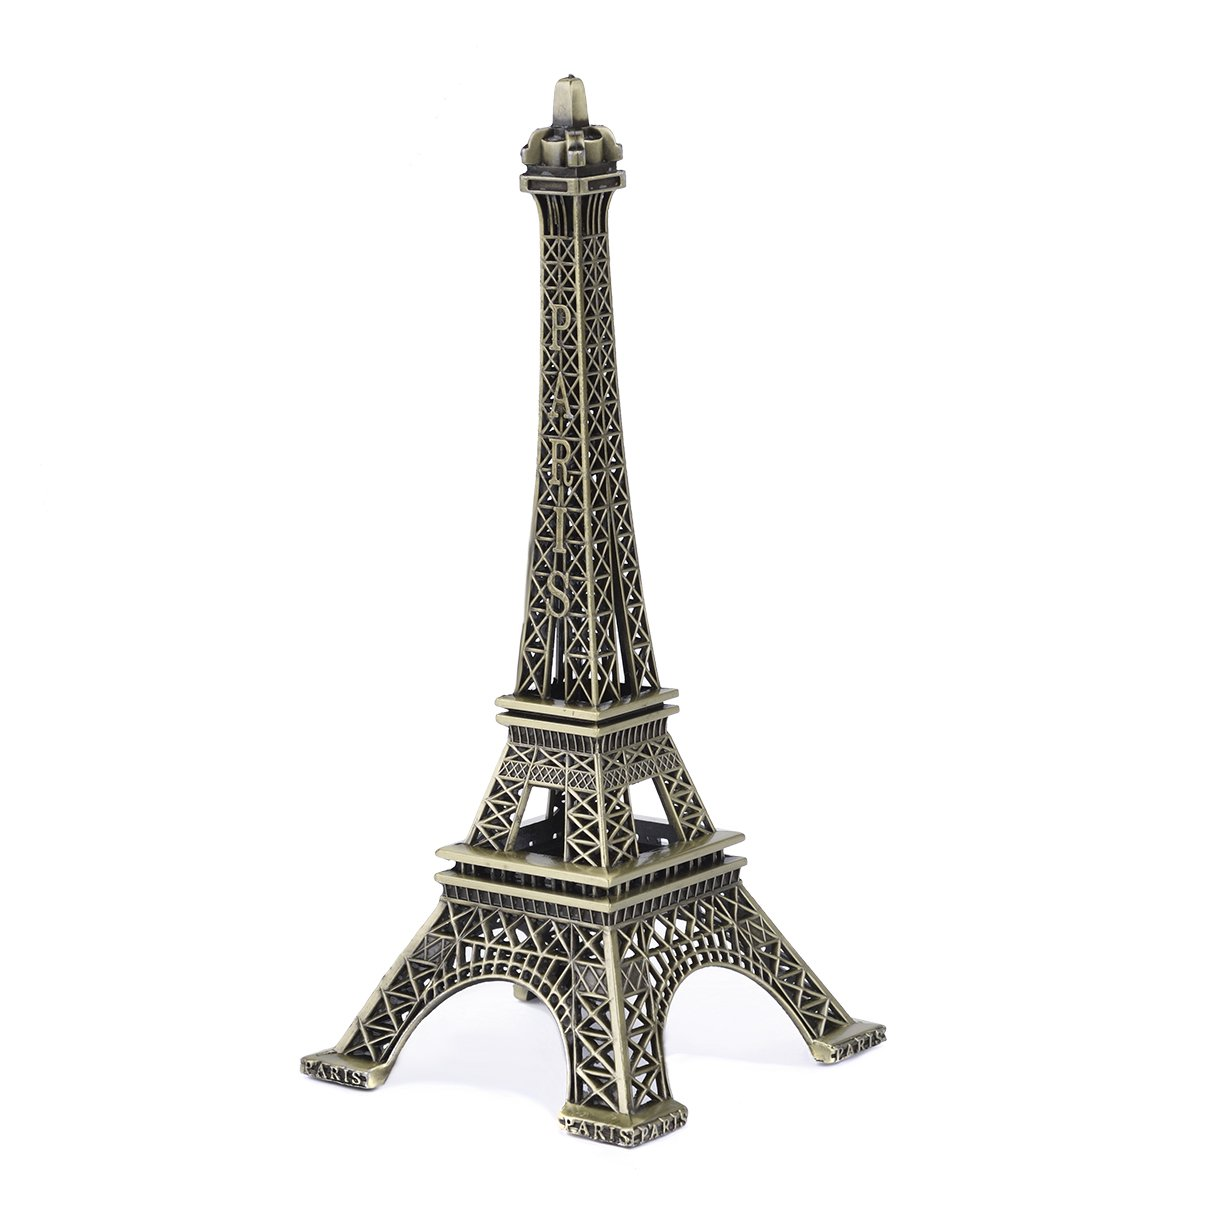 JoyFamily Eiffel Tower Decor,7Inch (18cm) Metal Paris Eiffel Tower Statue Figurine Replica Drawing Room Table Decor Jewelry Stand Holder for Cake Topper,Gifts,Party And Home Decoration (Retro)